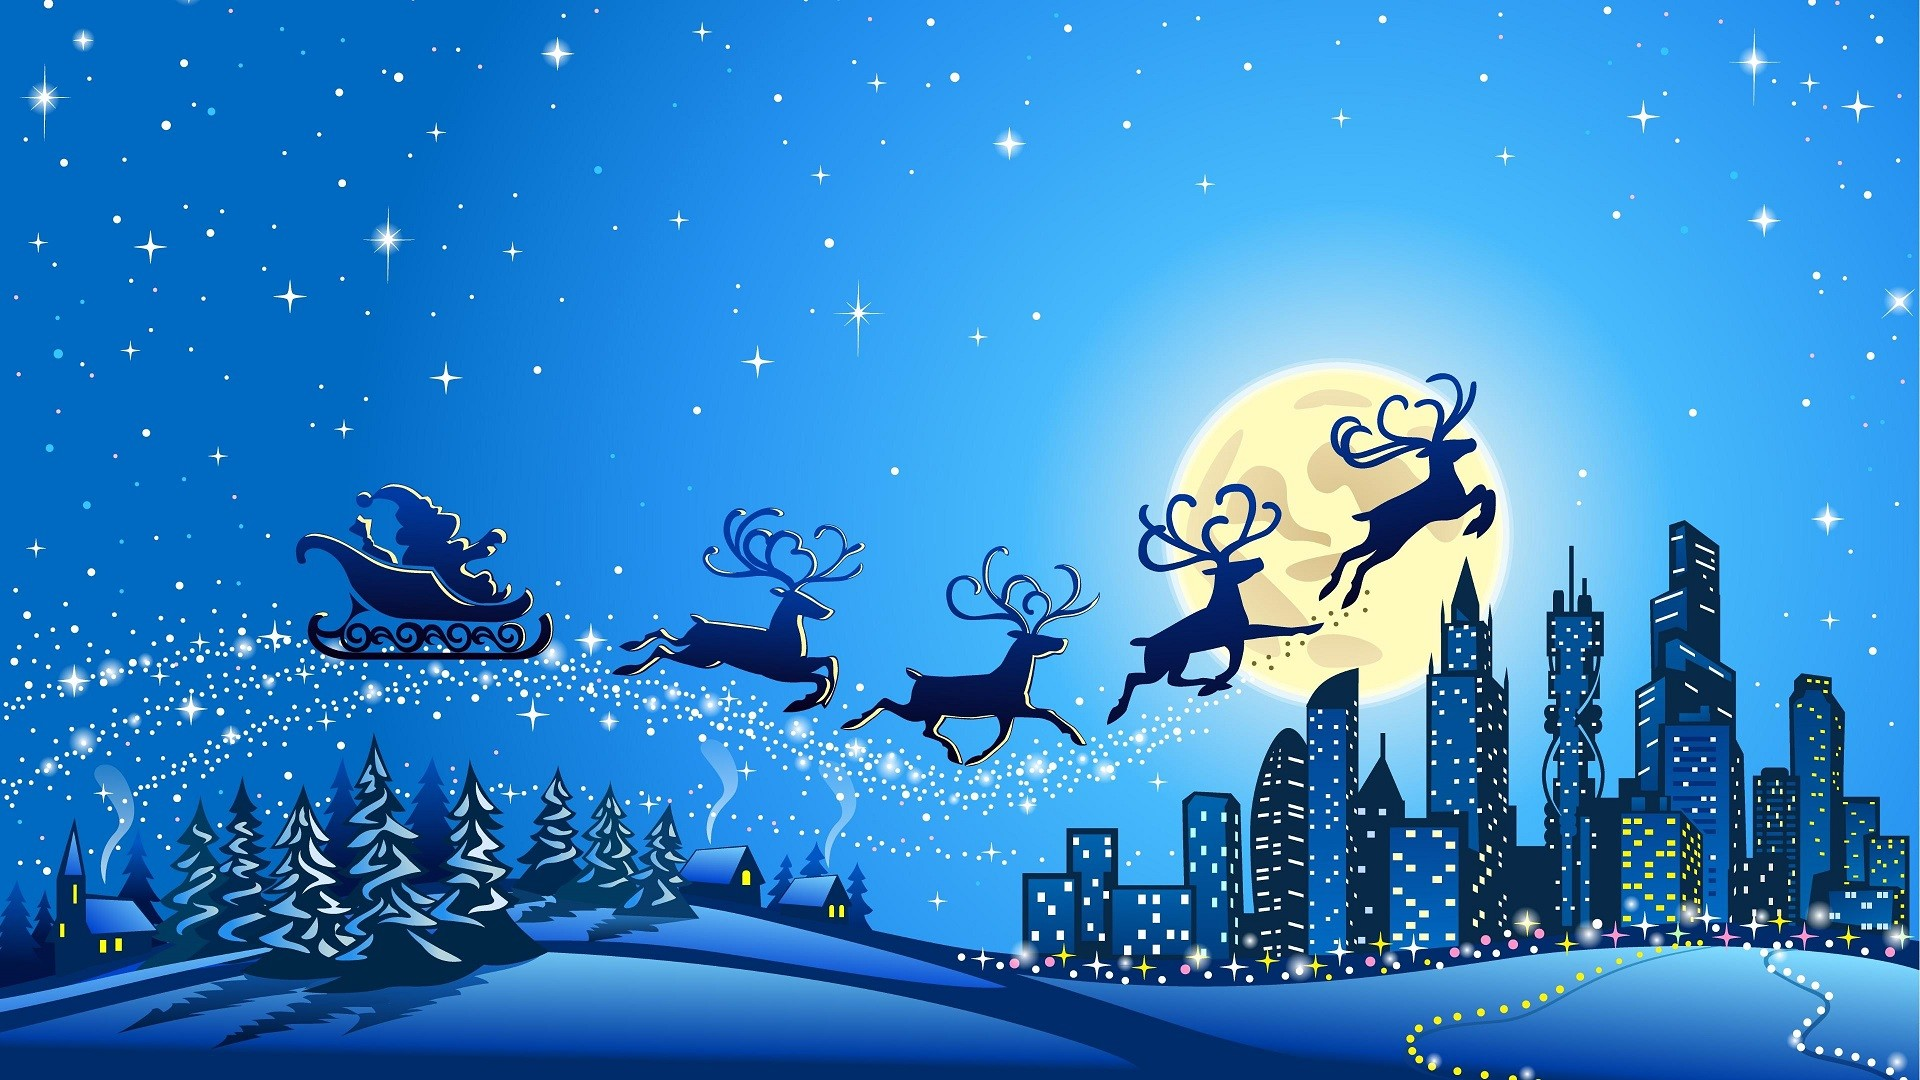 Merry-christmas-wallpaper-Beautiful15-collection-merry-christmas-and-